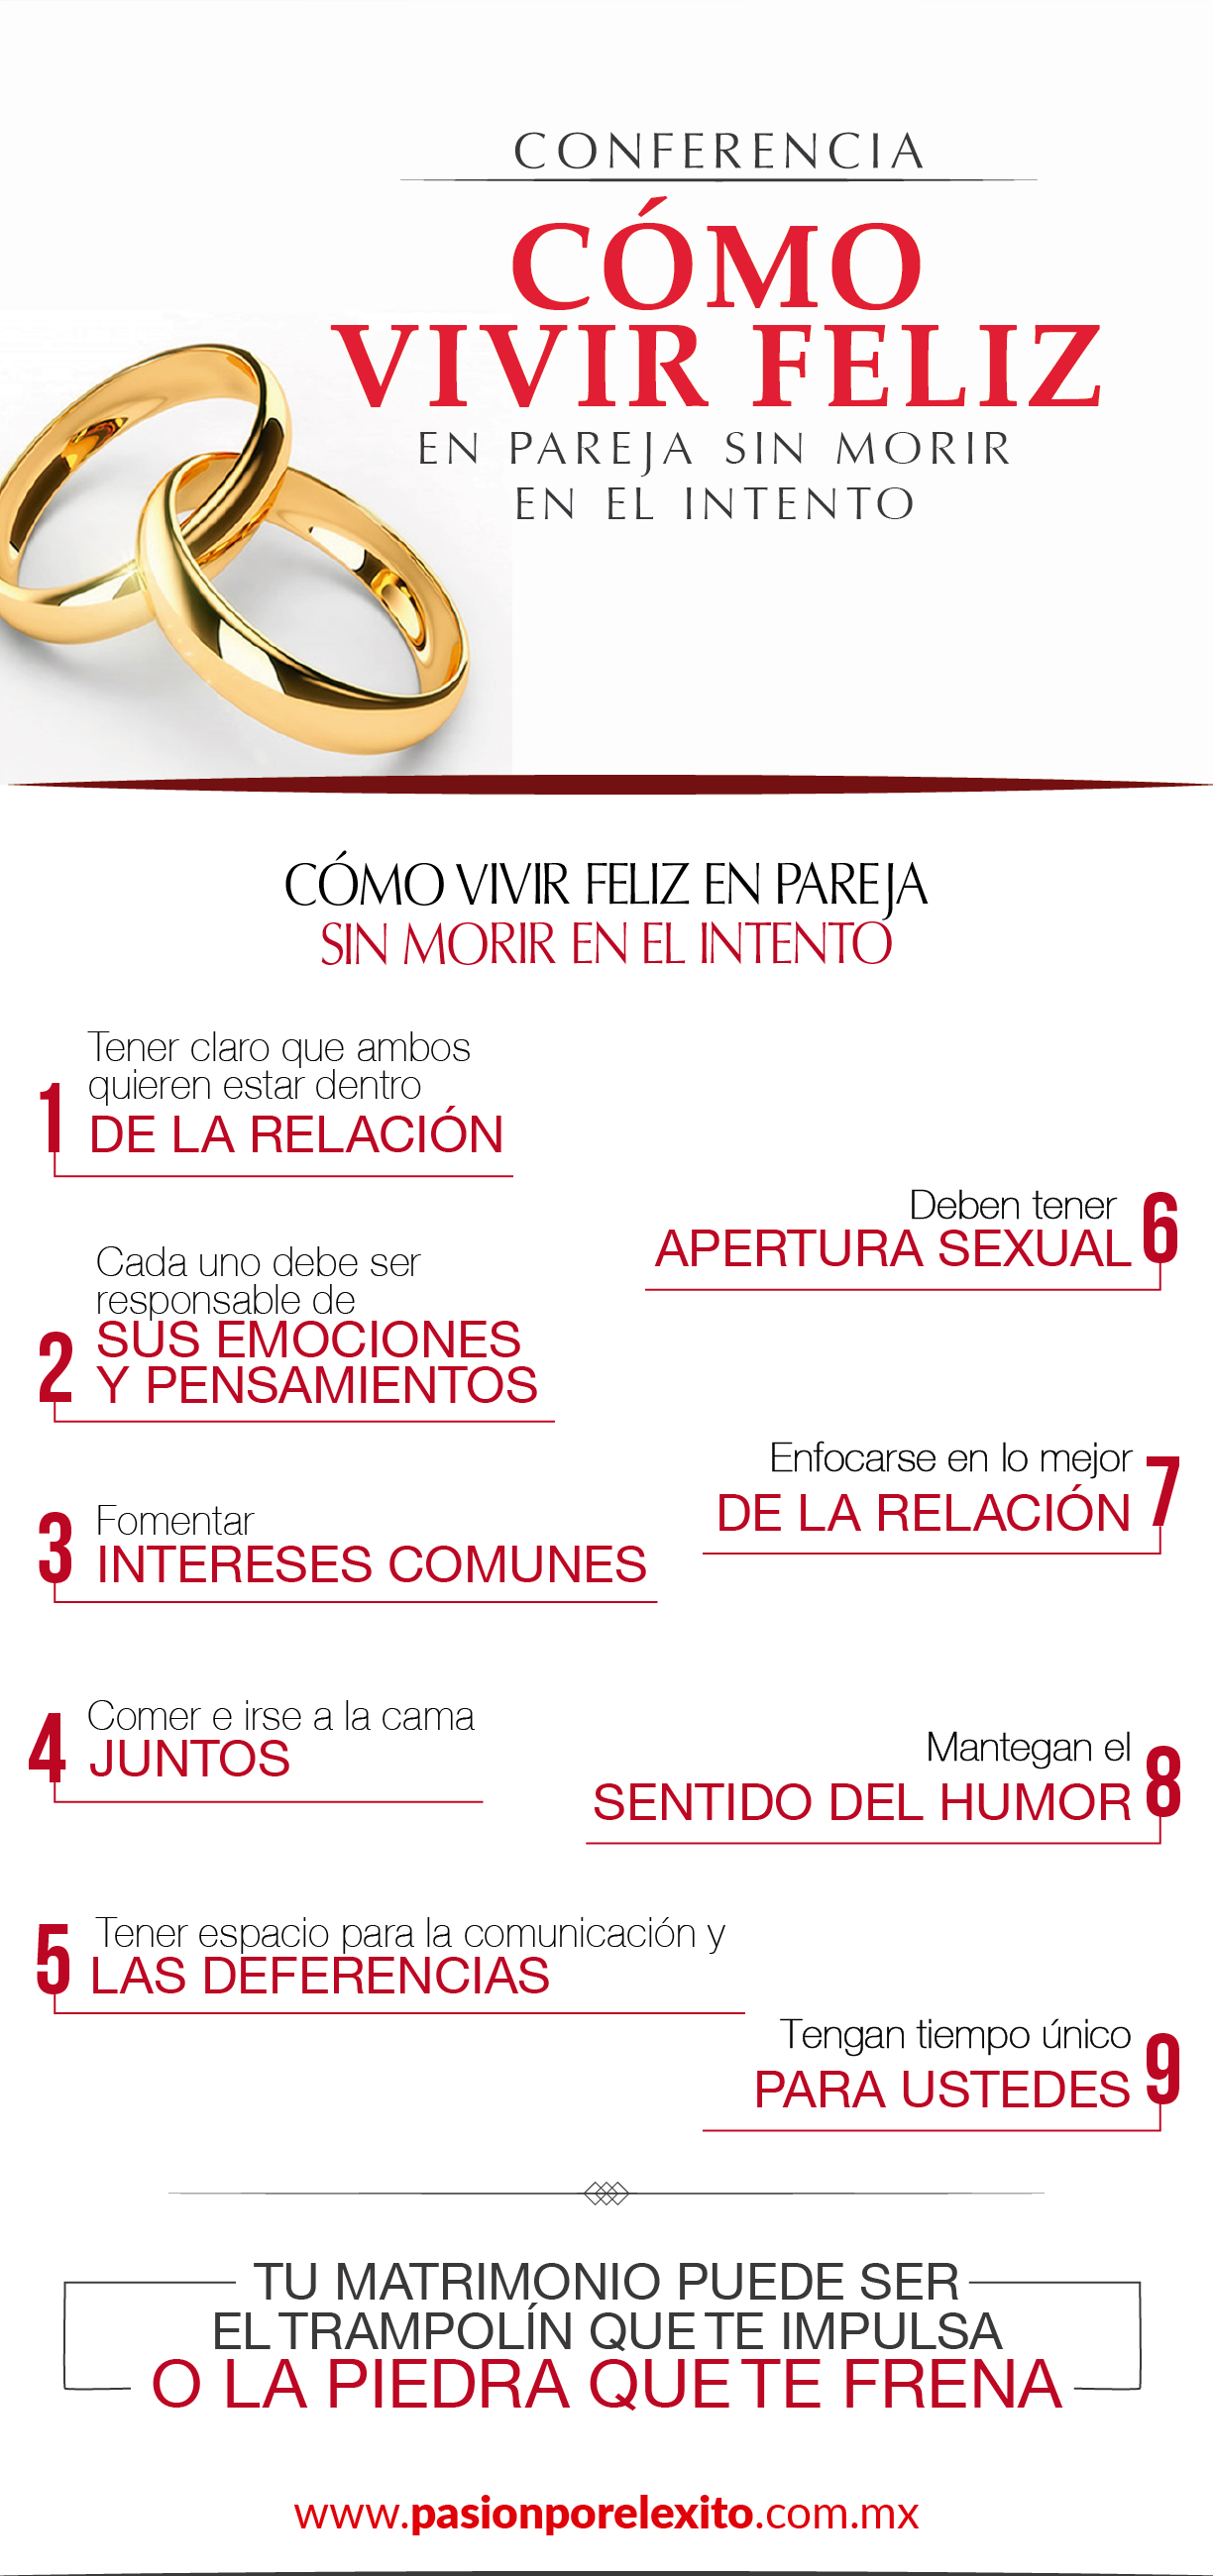 Dinamicas Y Conferencias De Matrimonios